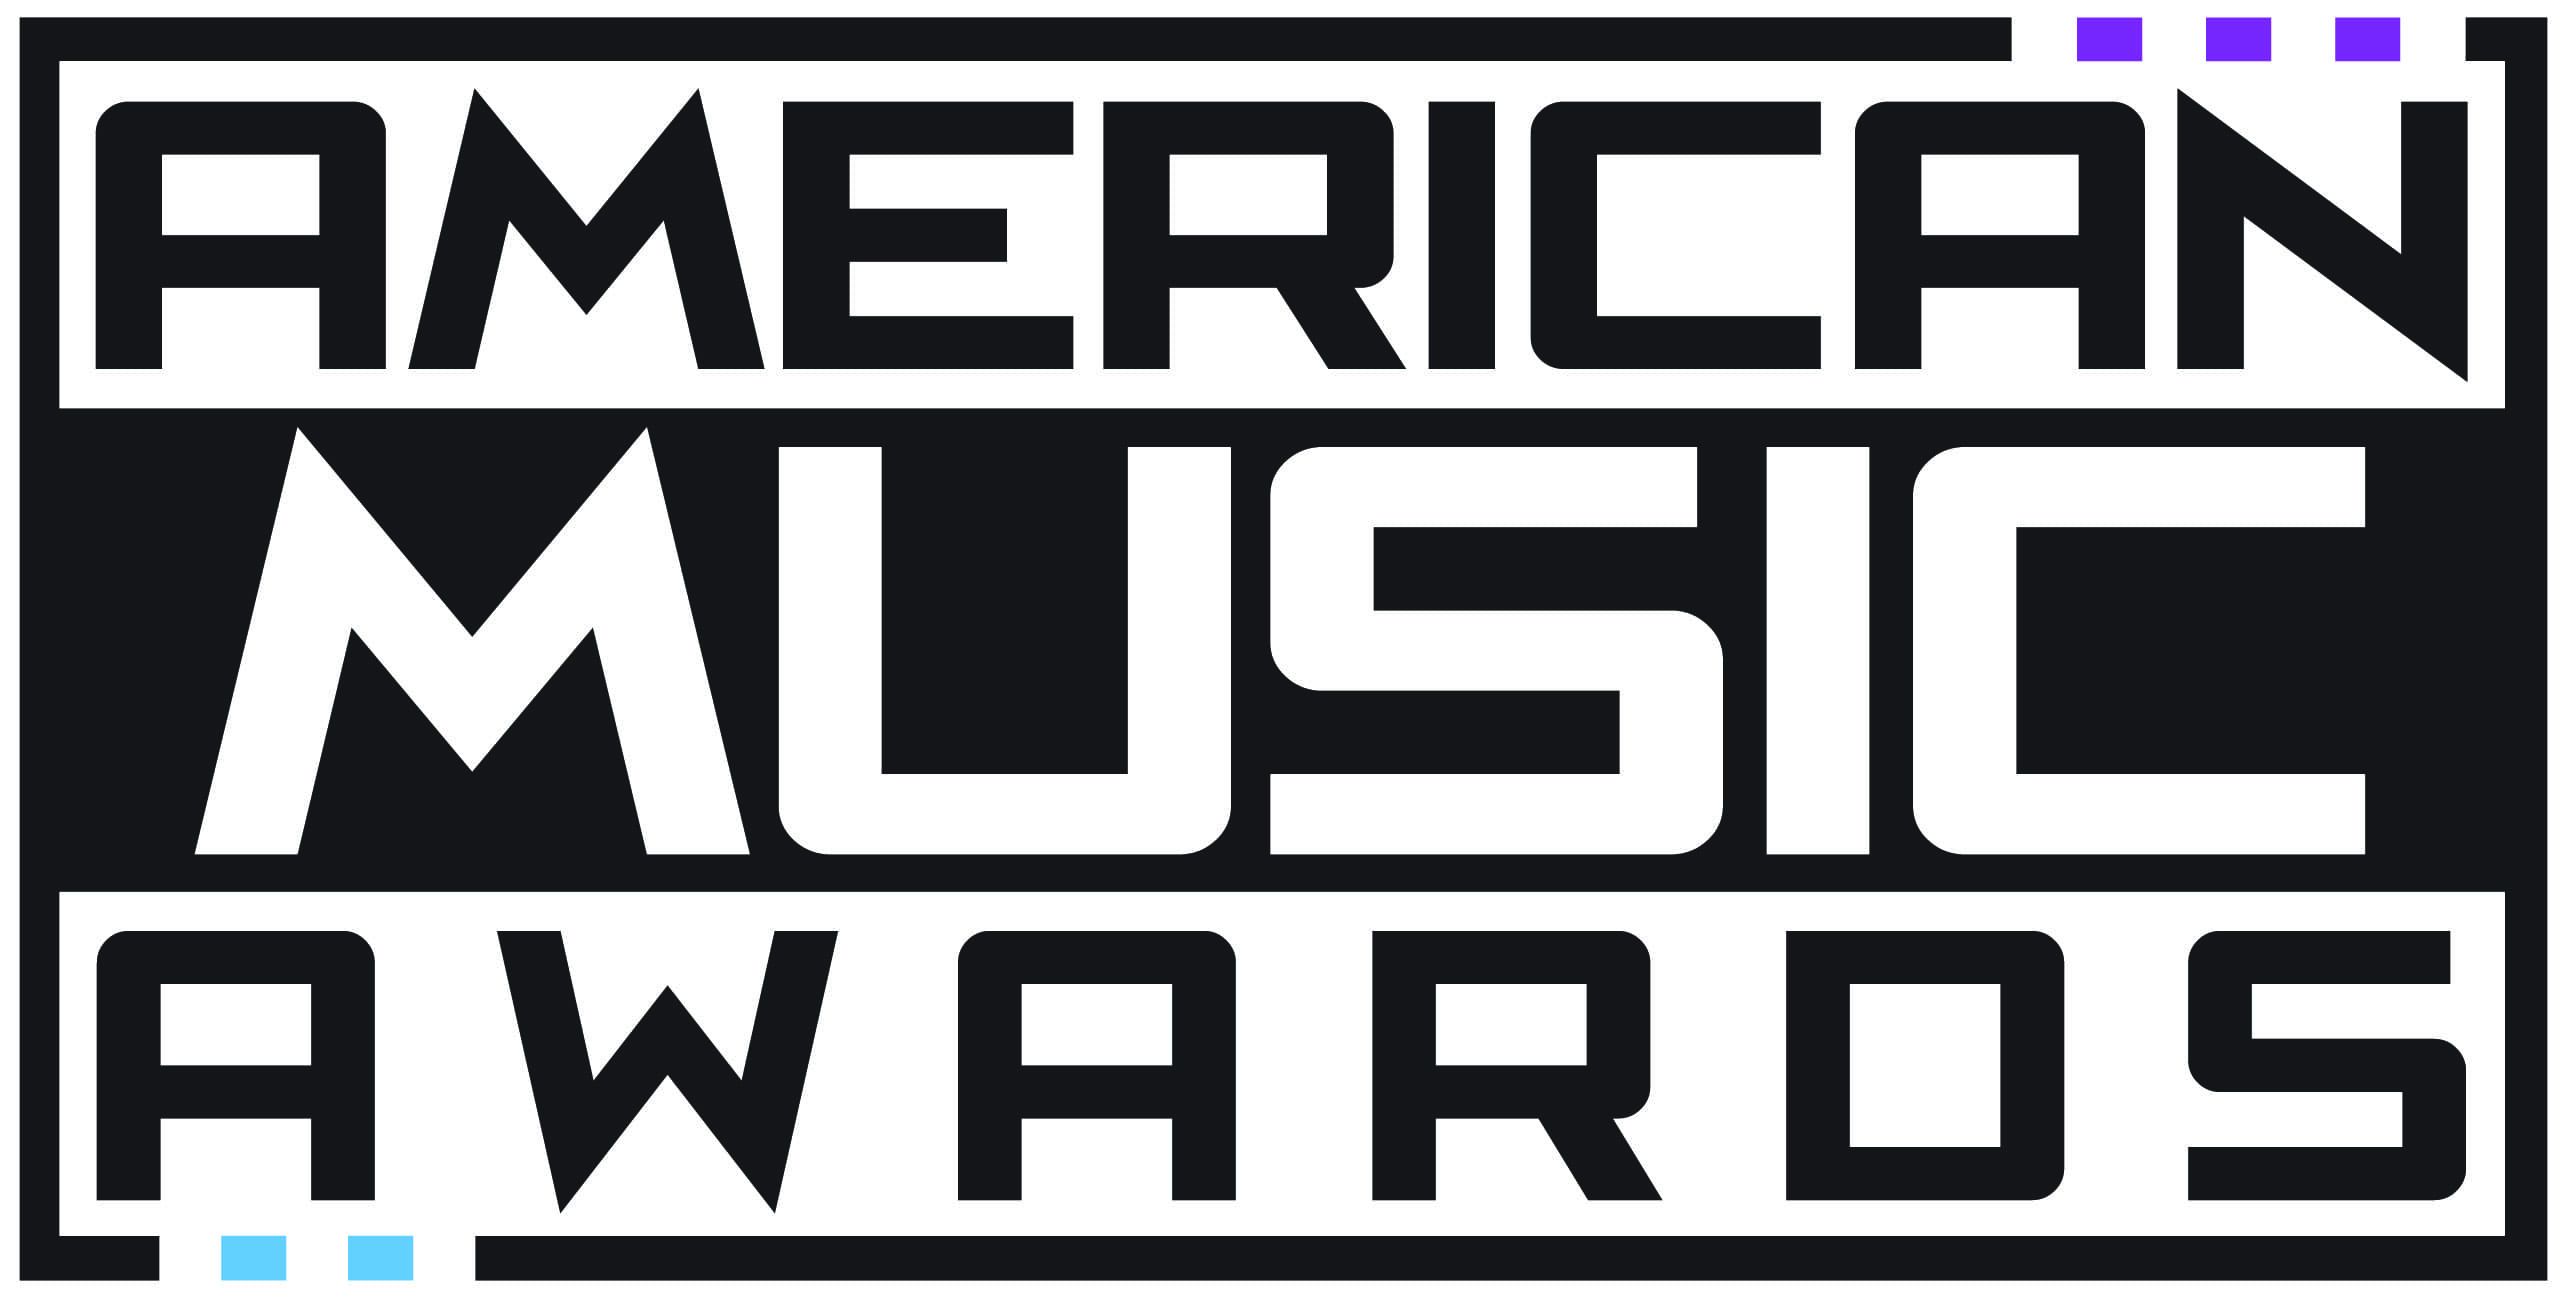 Dodeljene su American Music Awards (foto: Facebook)